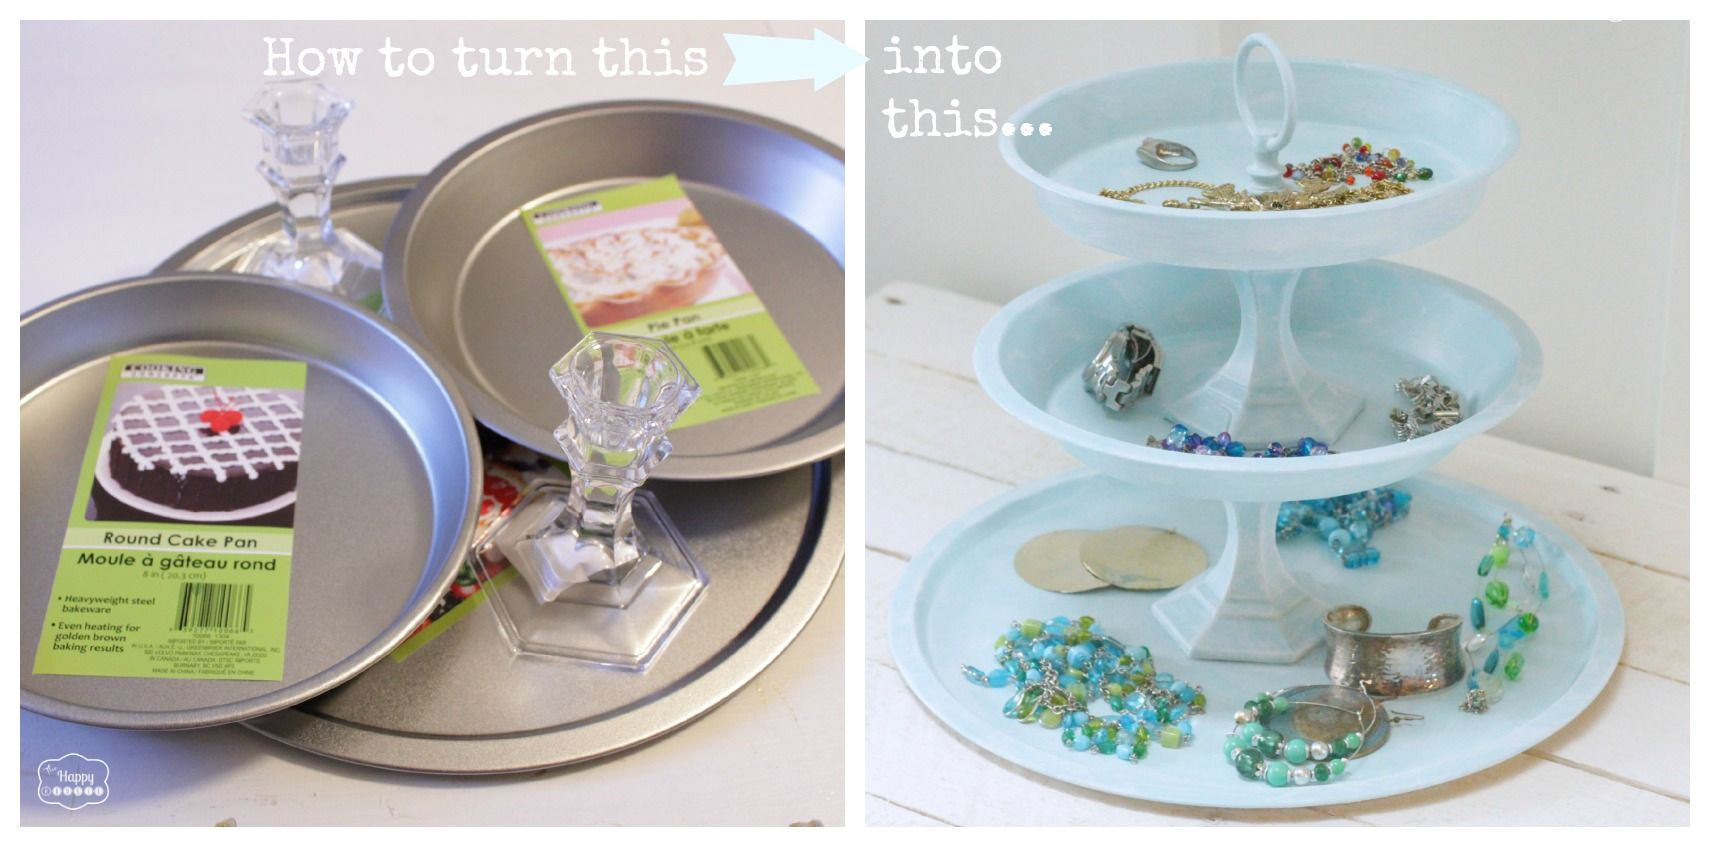 DIY Tiered Jewelry Tray From Dollar Store Finds